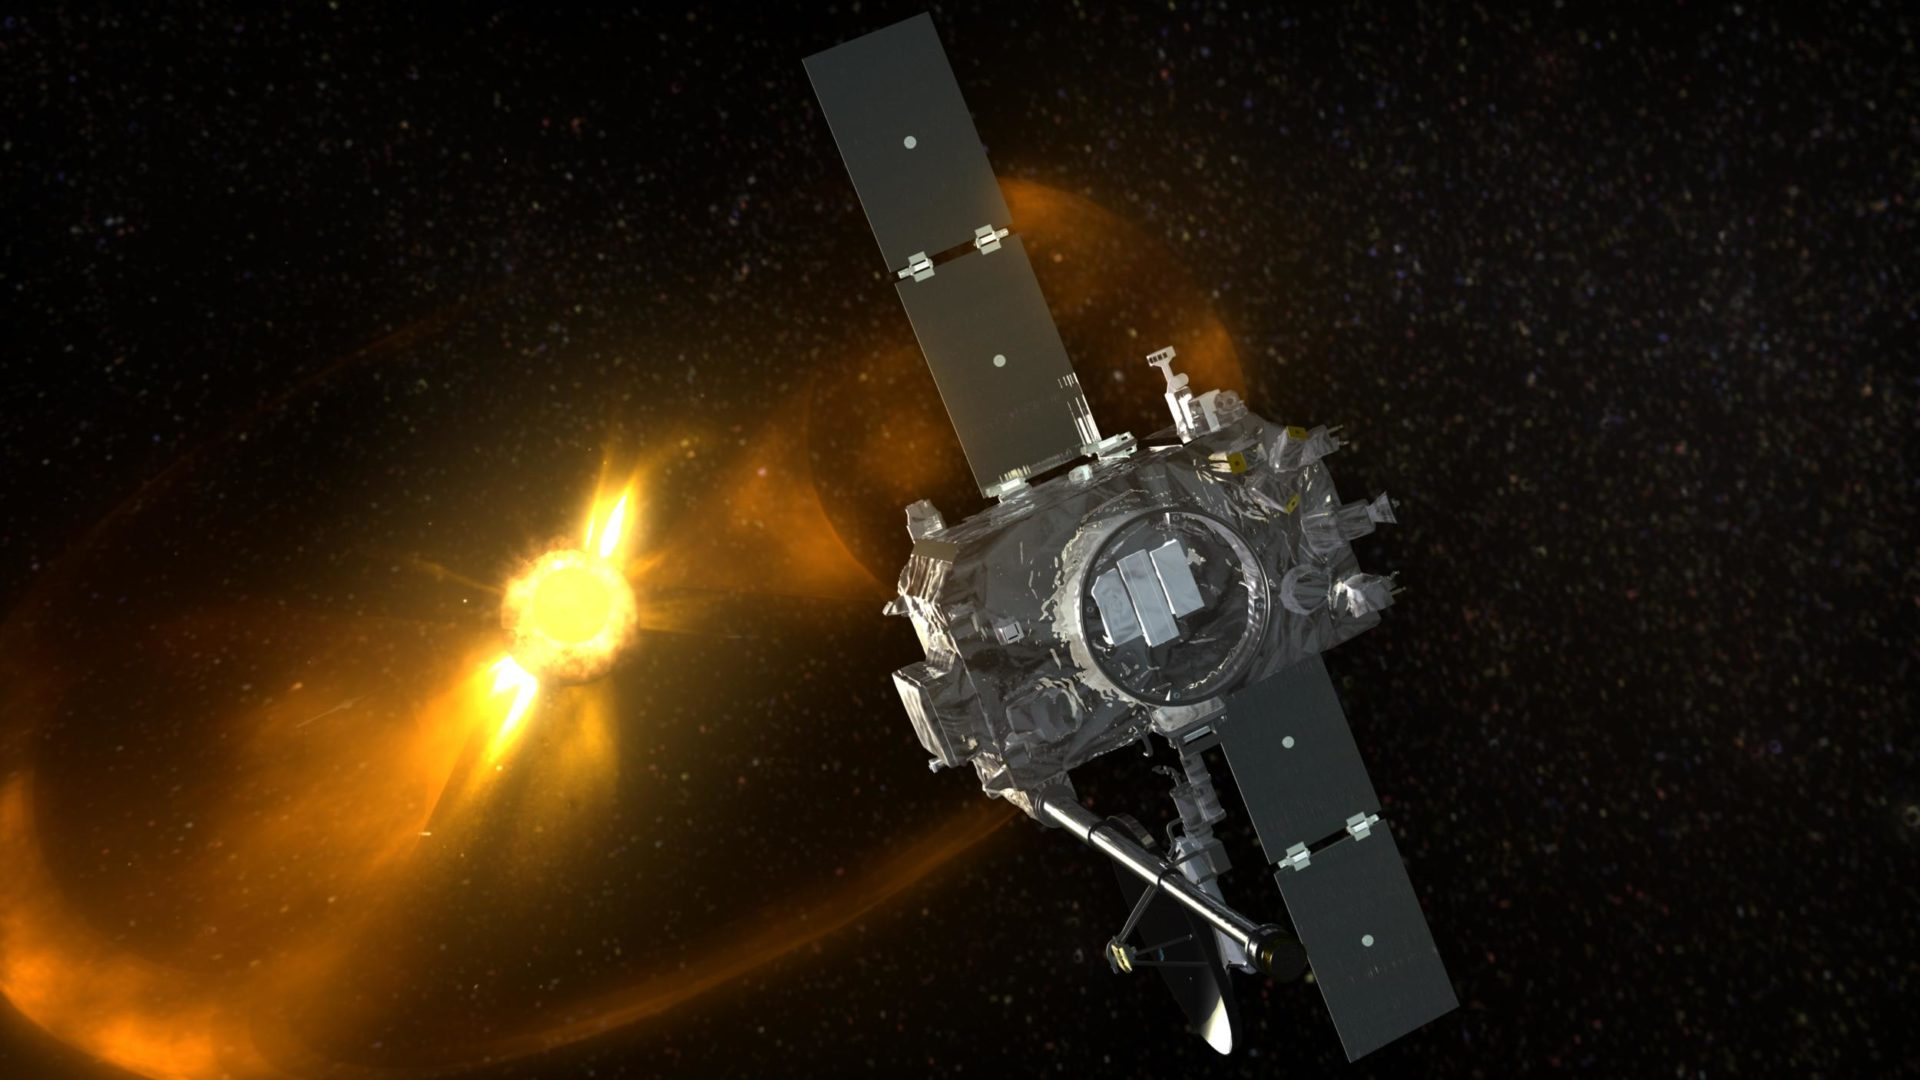 NASA's failures: Robotic space missions that didn't go as planned